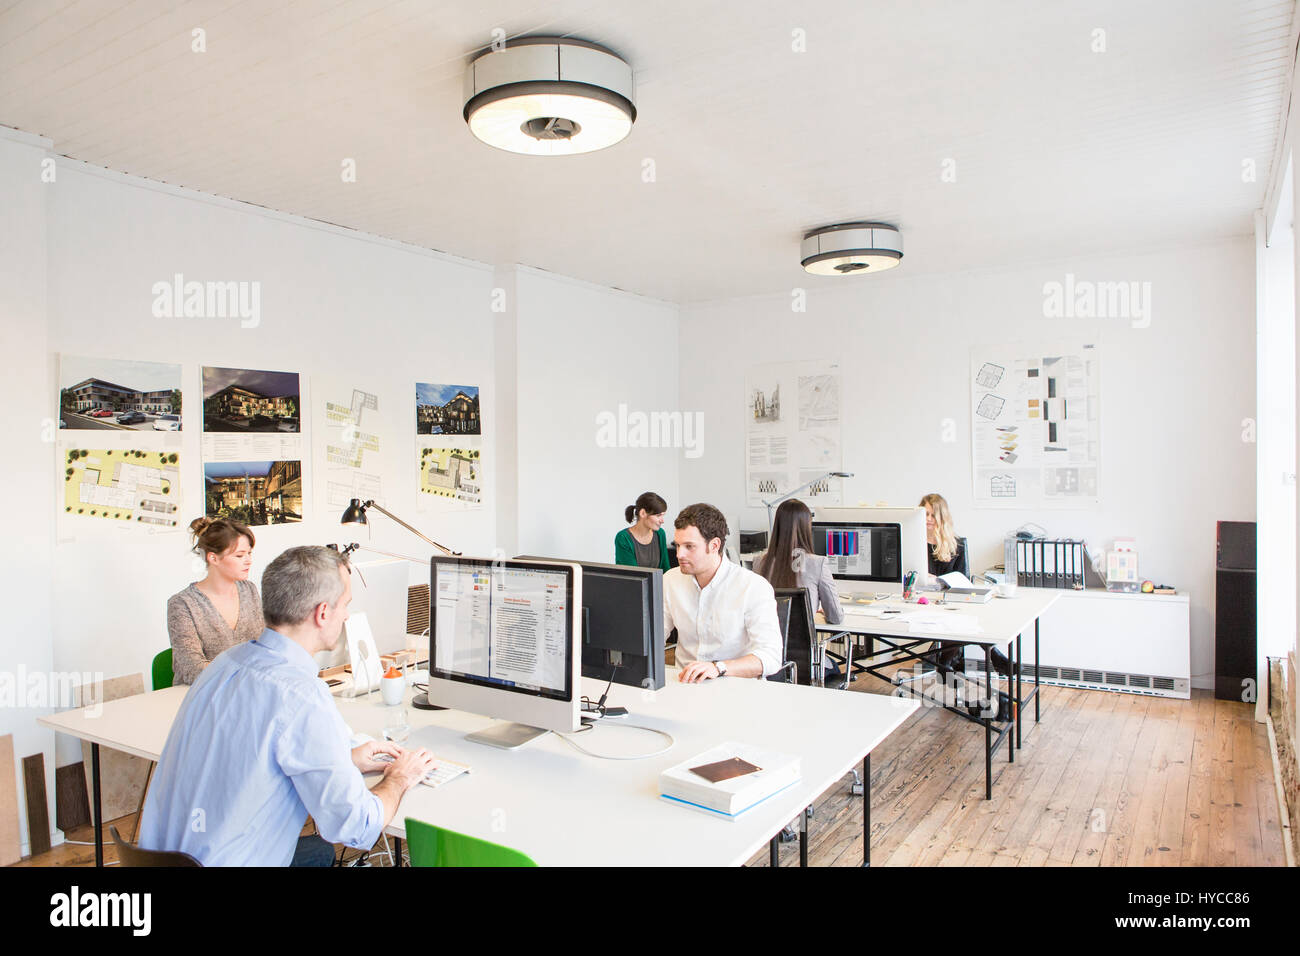 Colleagues in office sitting at desks using computers - Stock Image